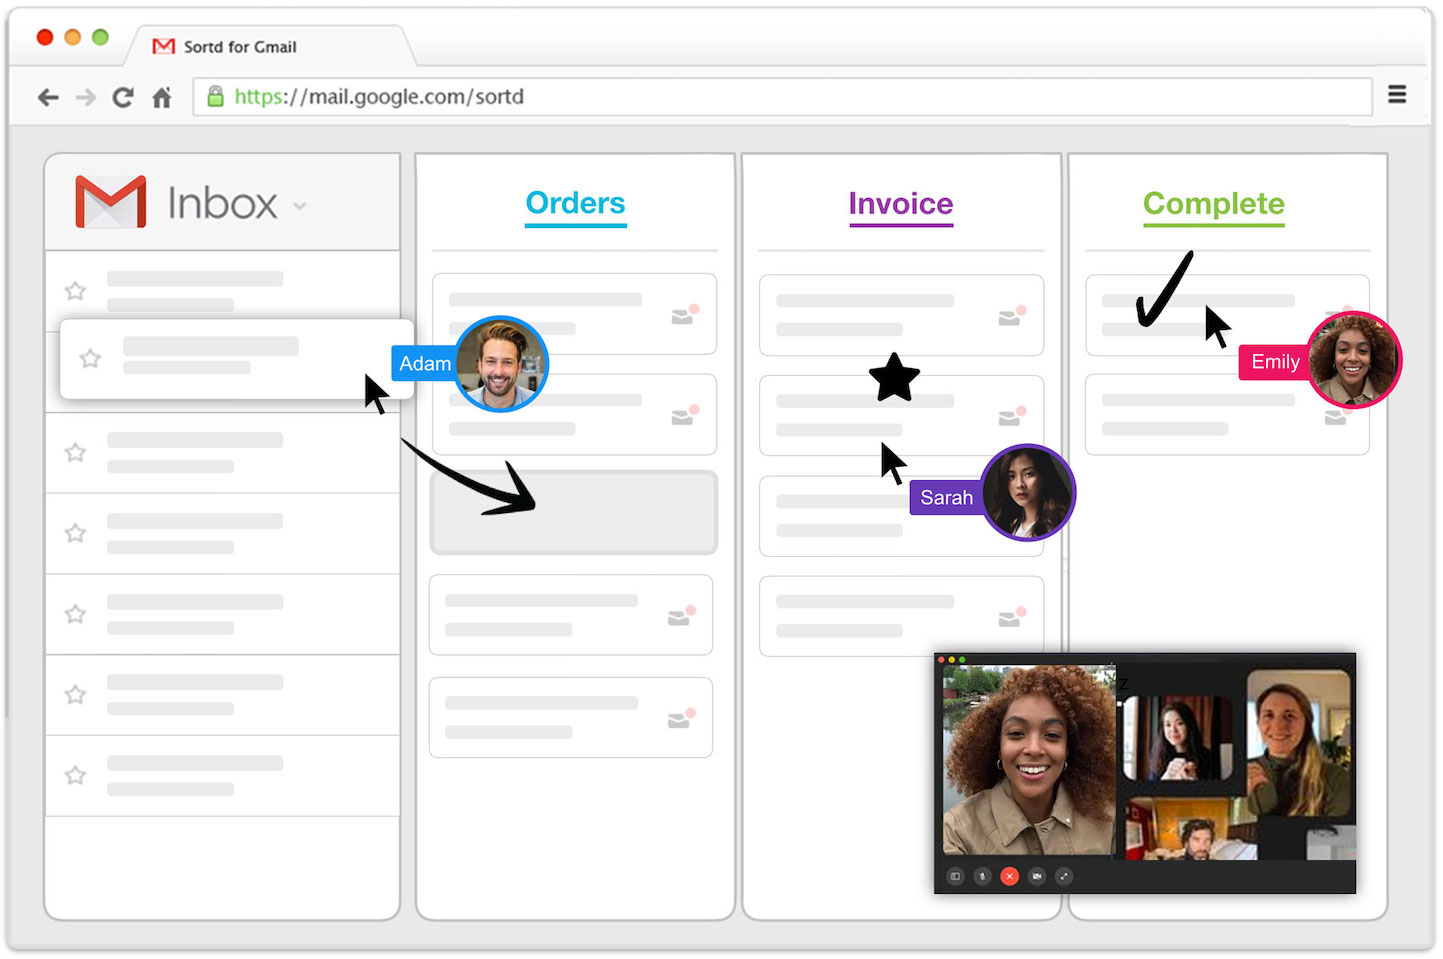 10 Ways Sortd for Gmail can help manage Remote Teamwork